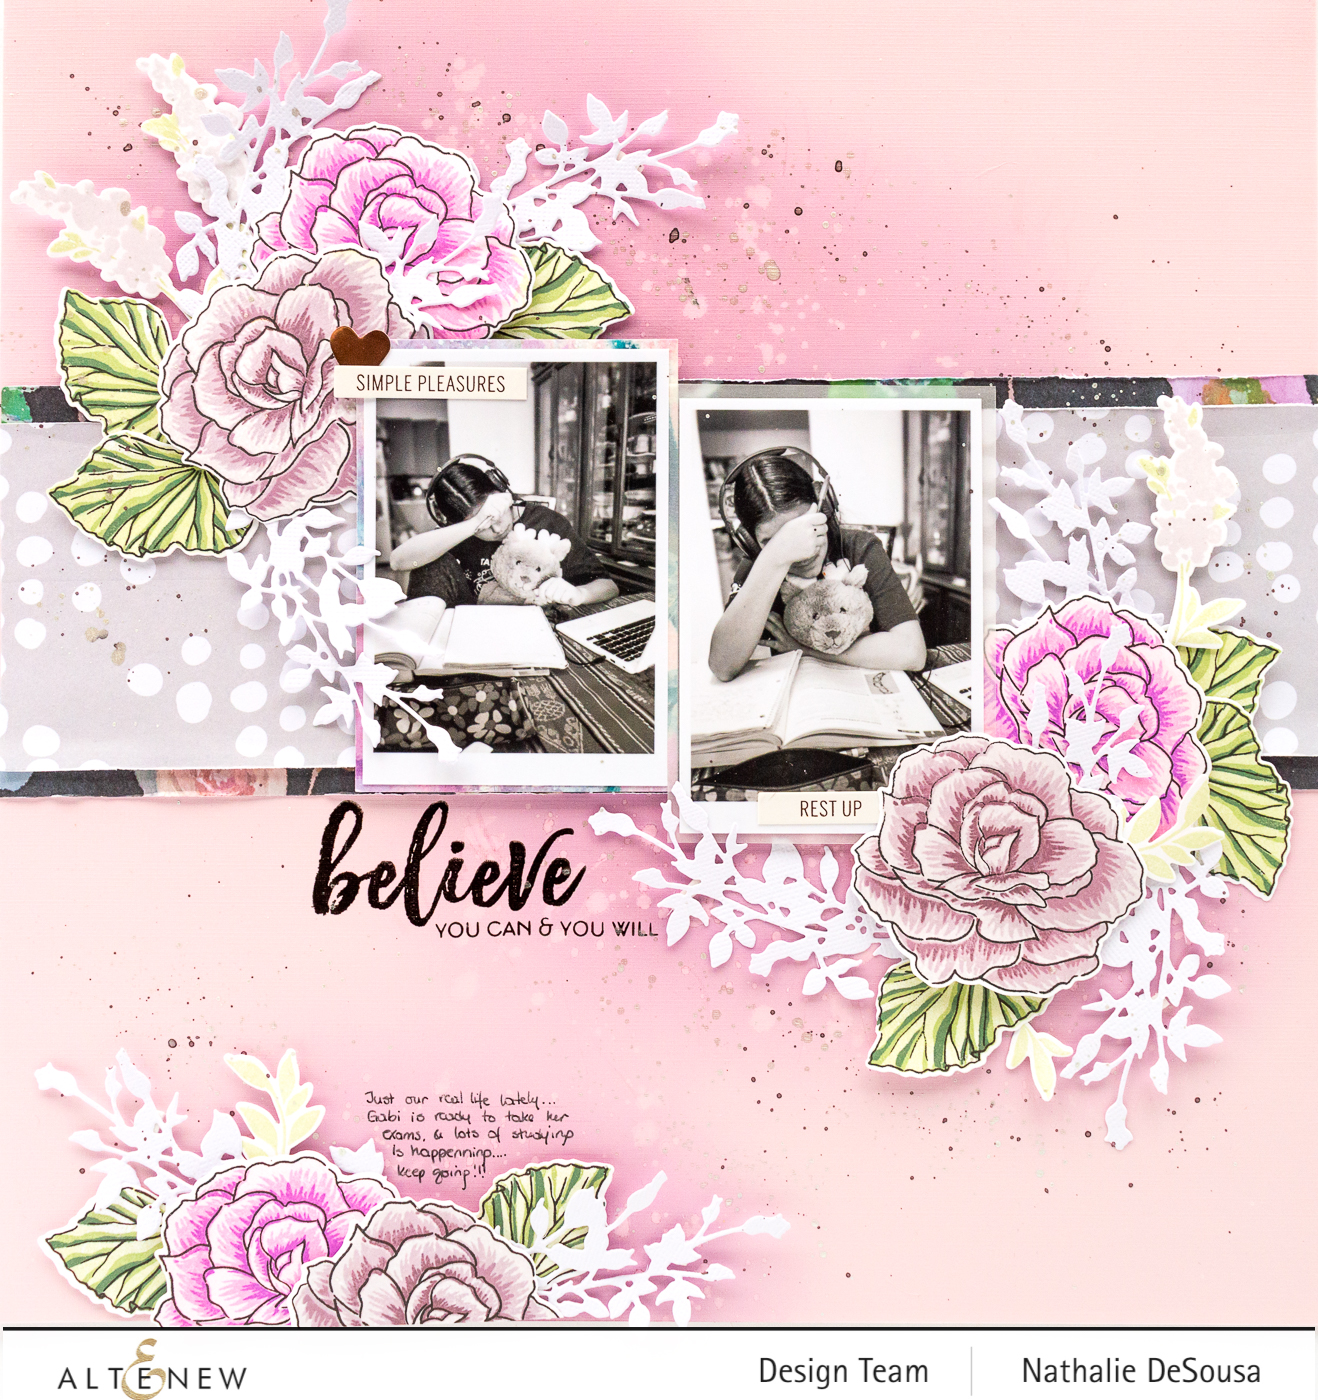 @altenew_scrapbook layout feat. Build-a-fower: Begonia stamp set by Nathalie DeSousa